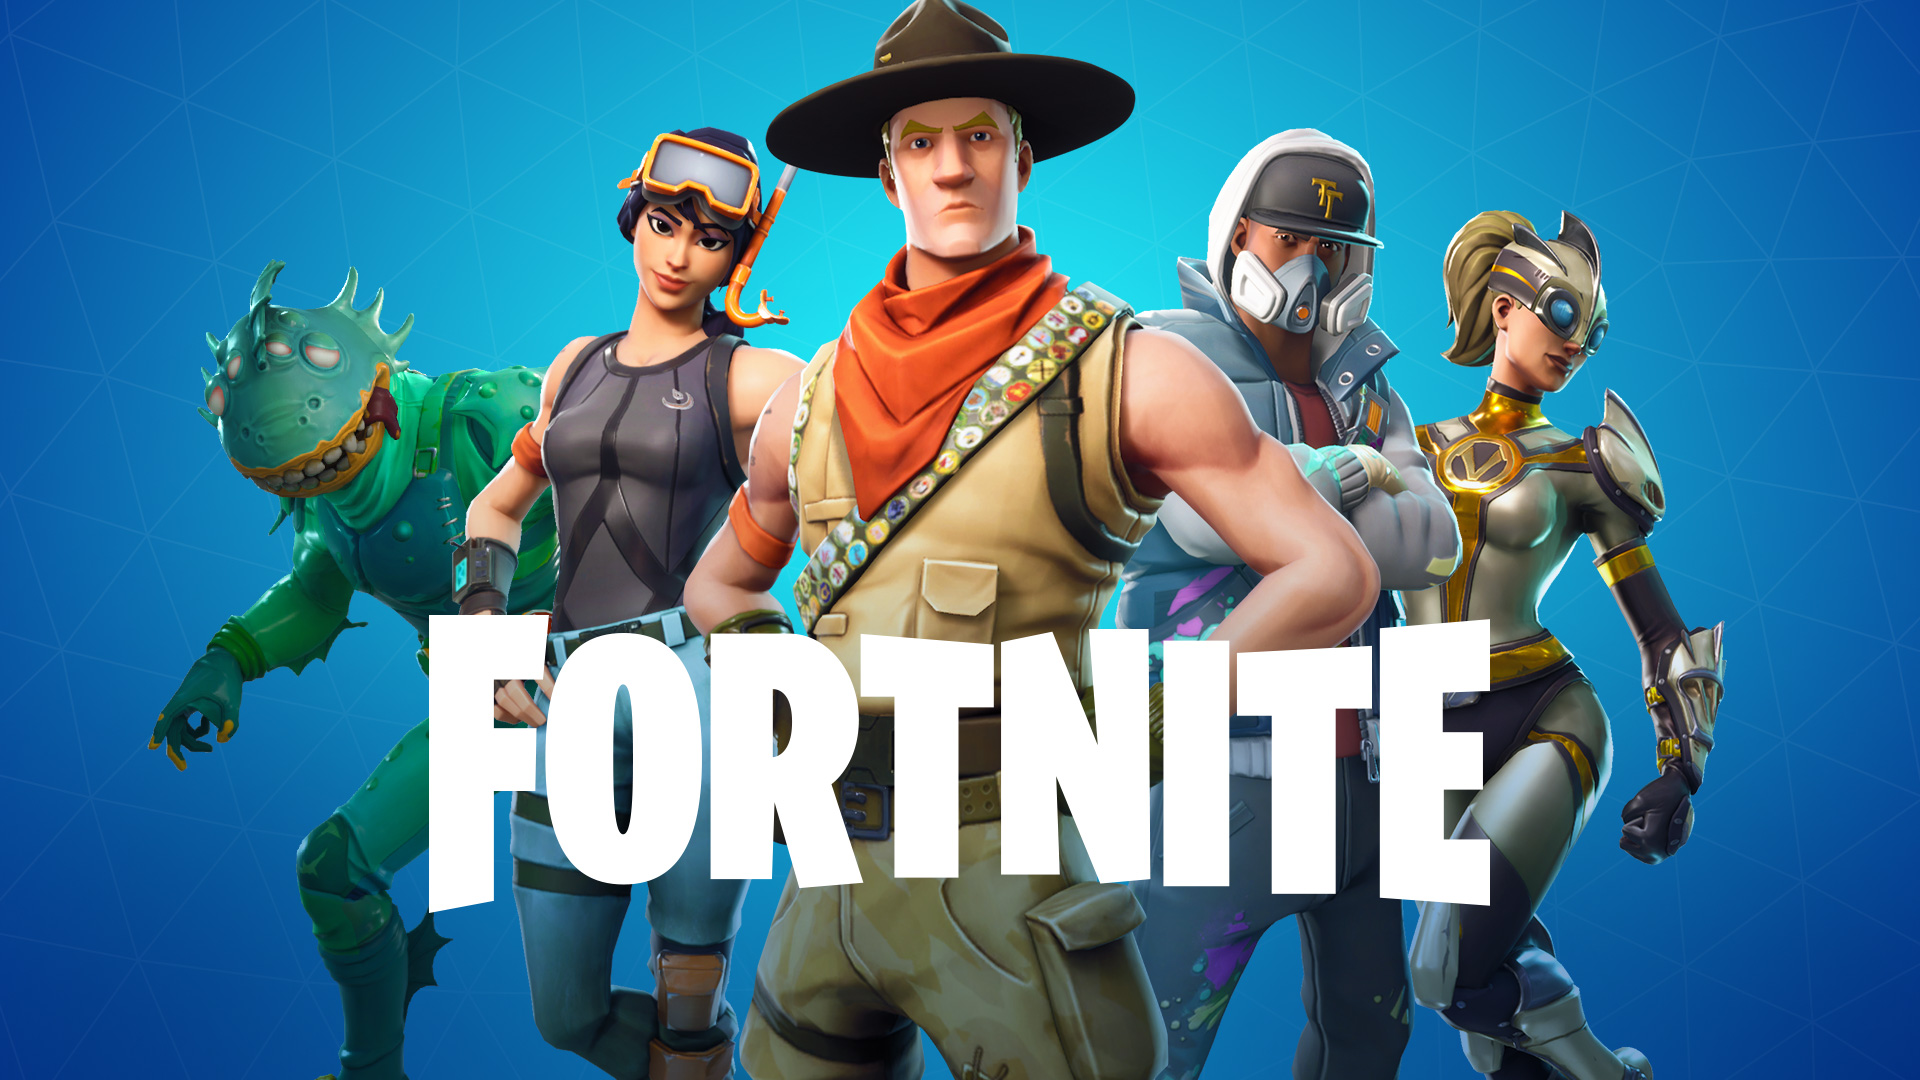 Epic Games files lawsuit after Fortnite removed by Apple and Google over in-game payments - SiliconANGLE